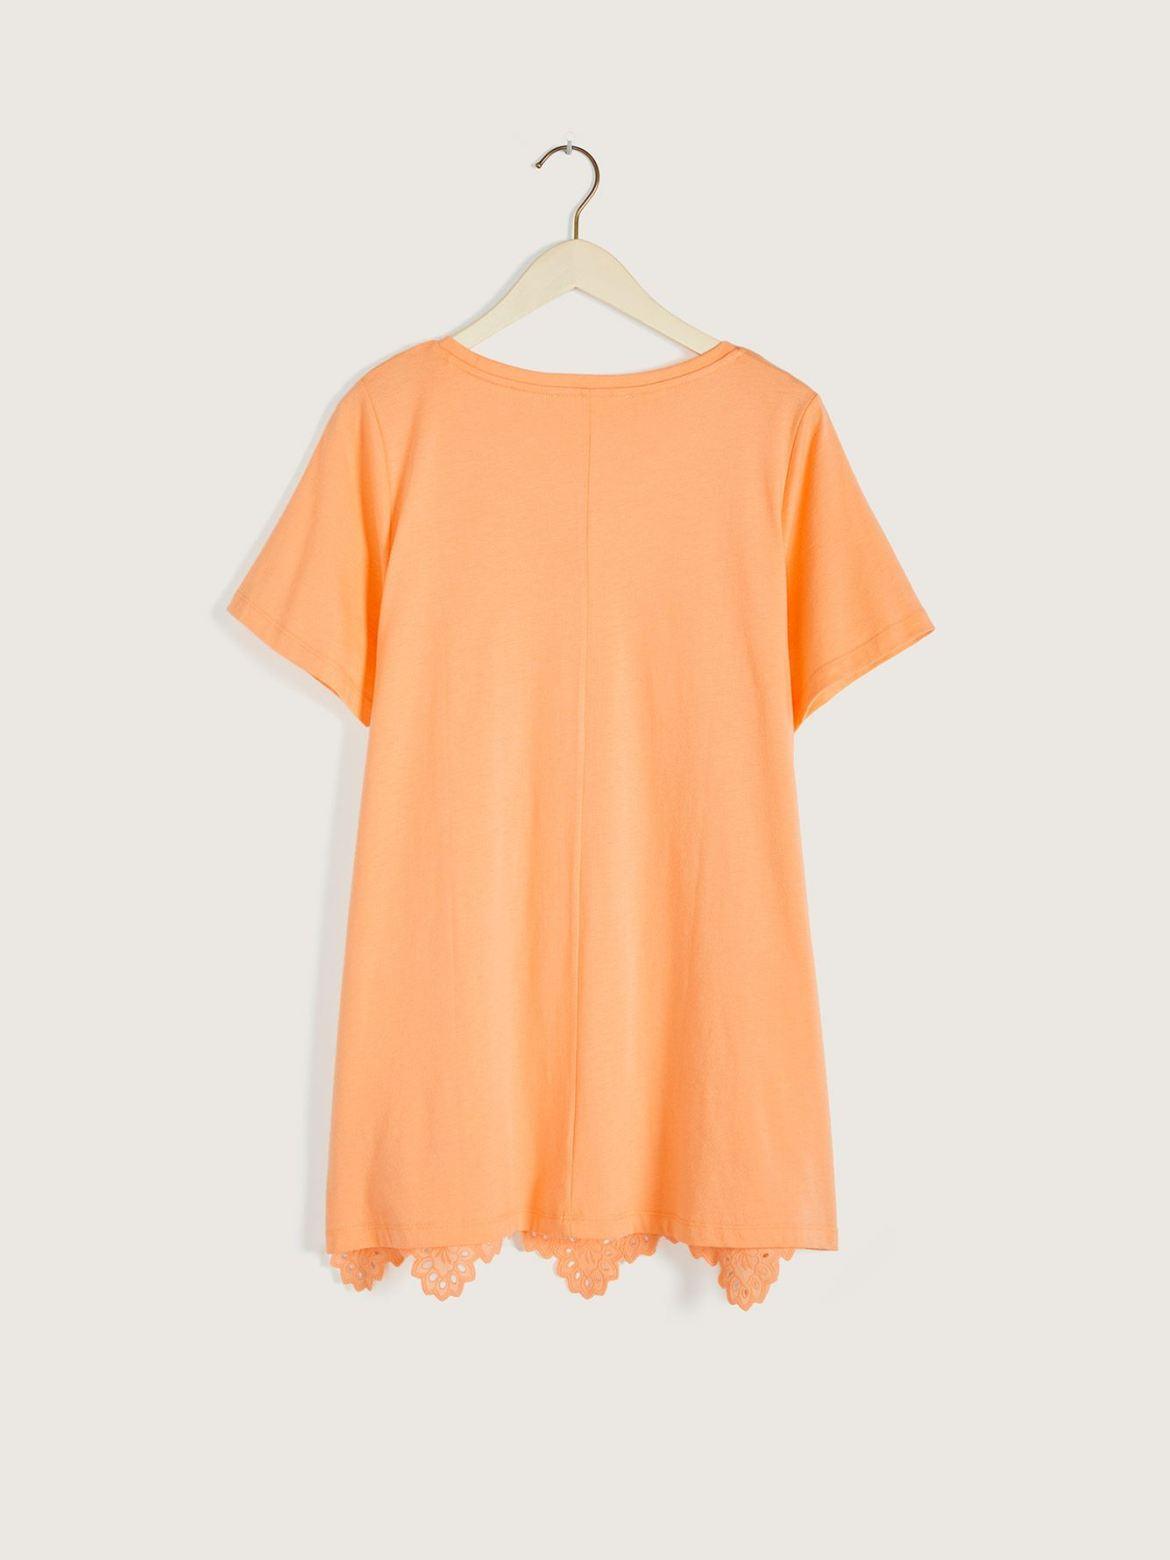 Solid A-Line Top with Eyelet Trim - In Every Story